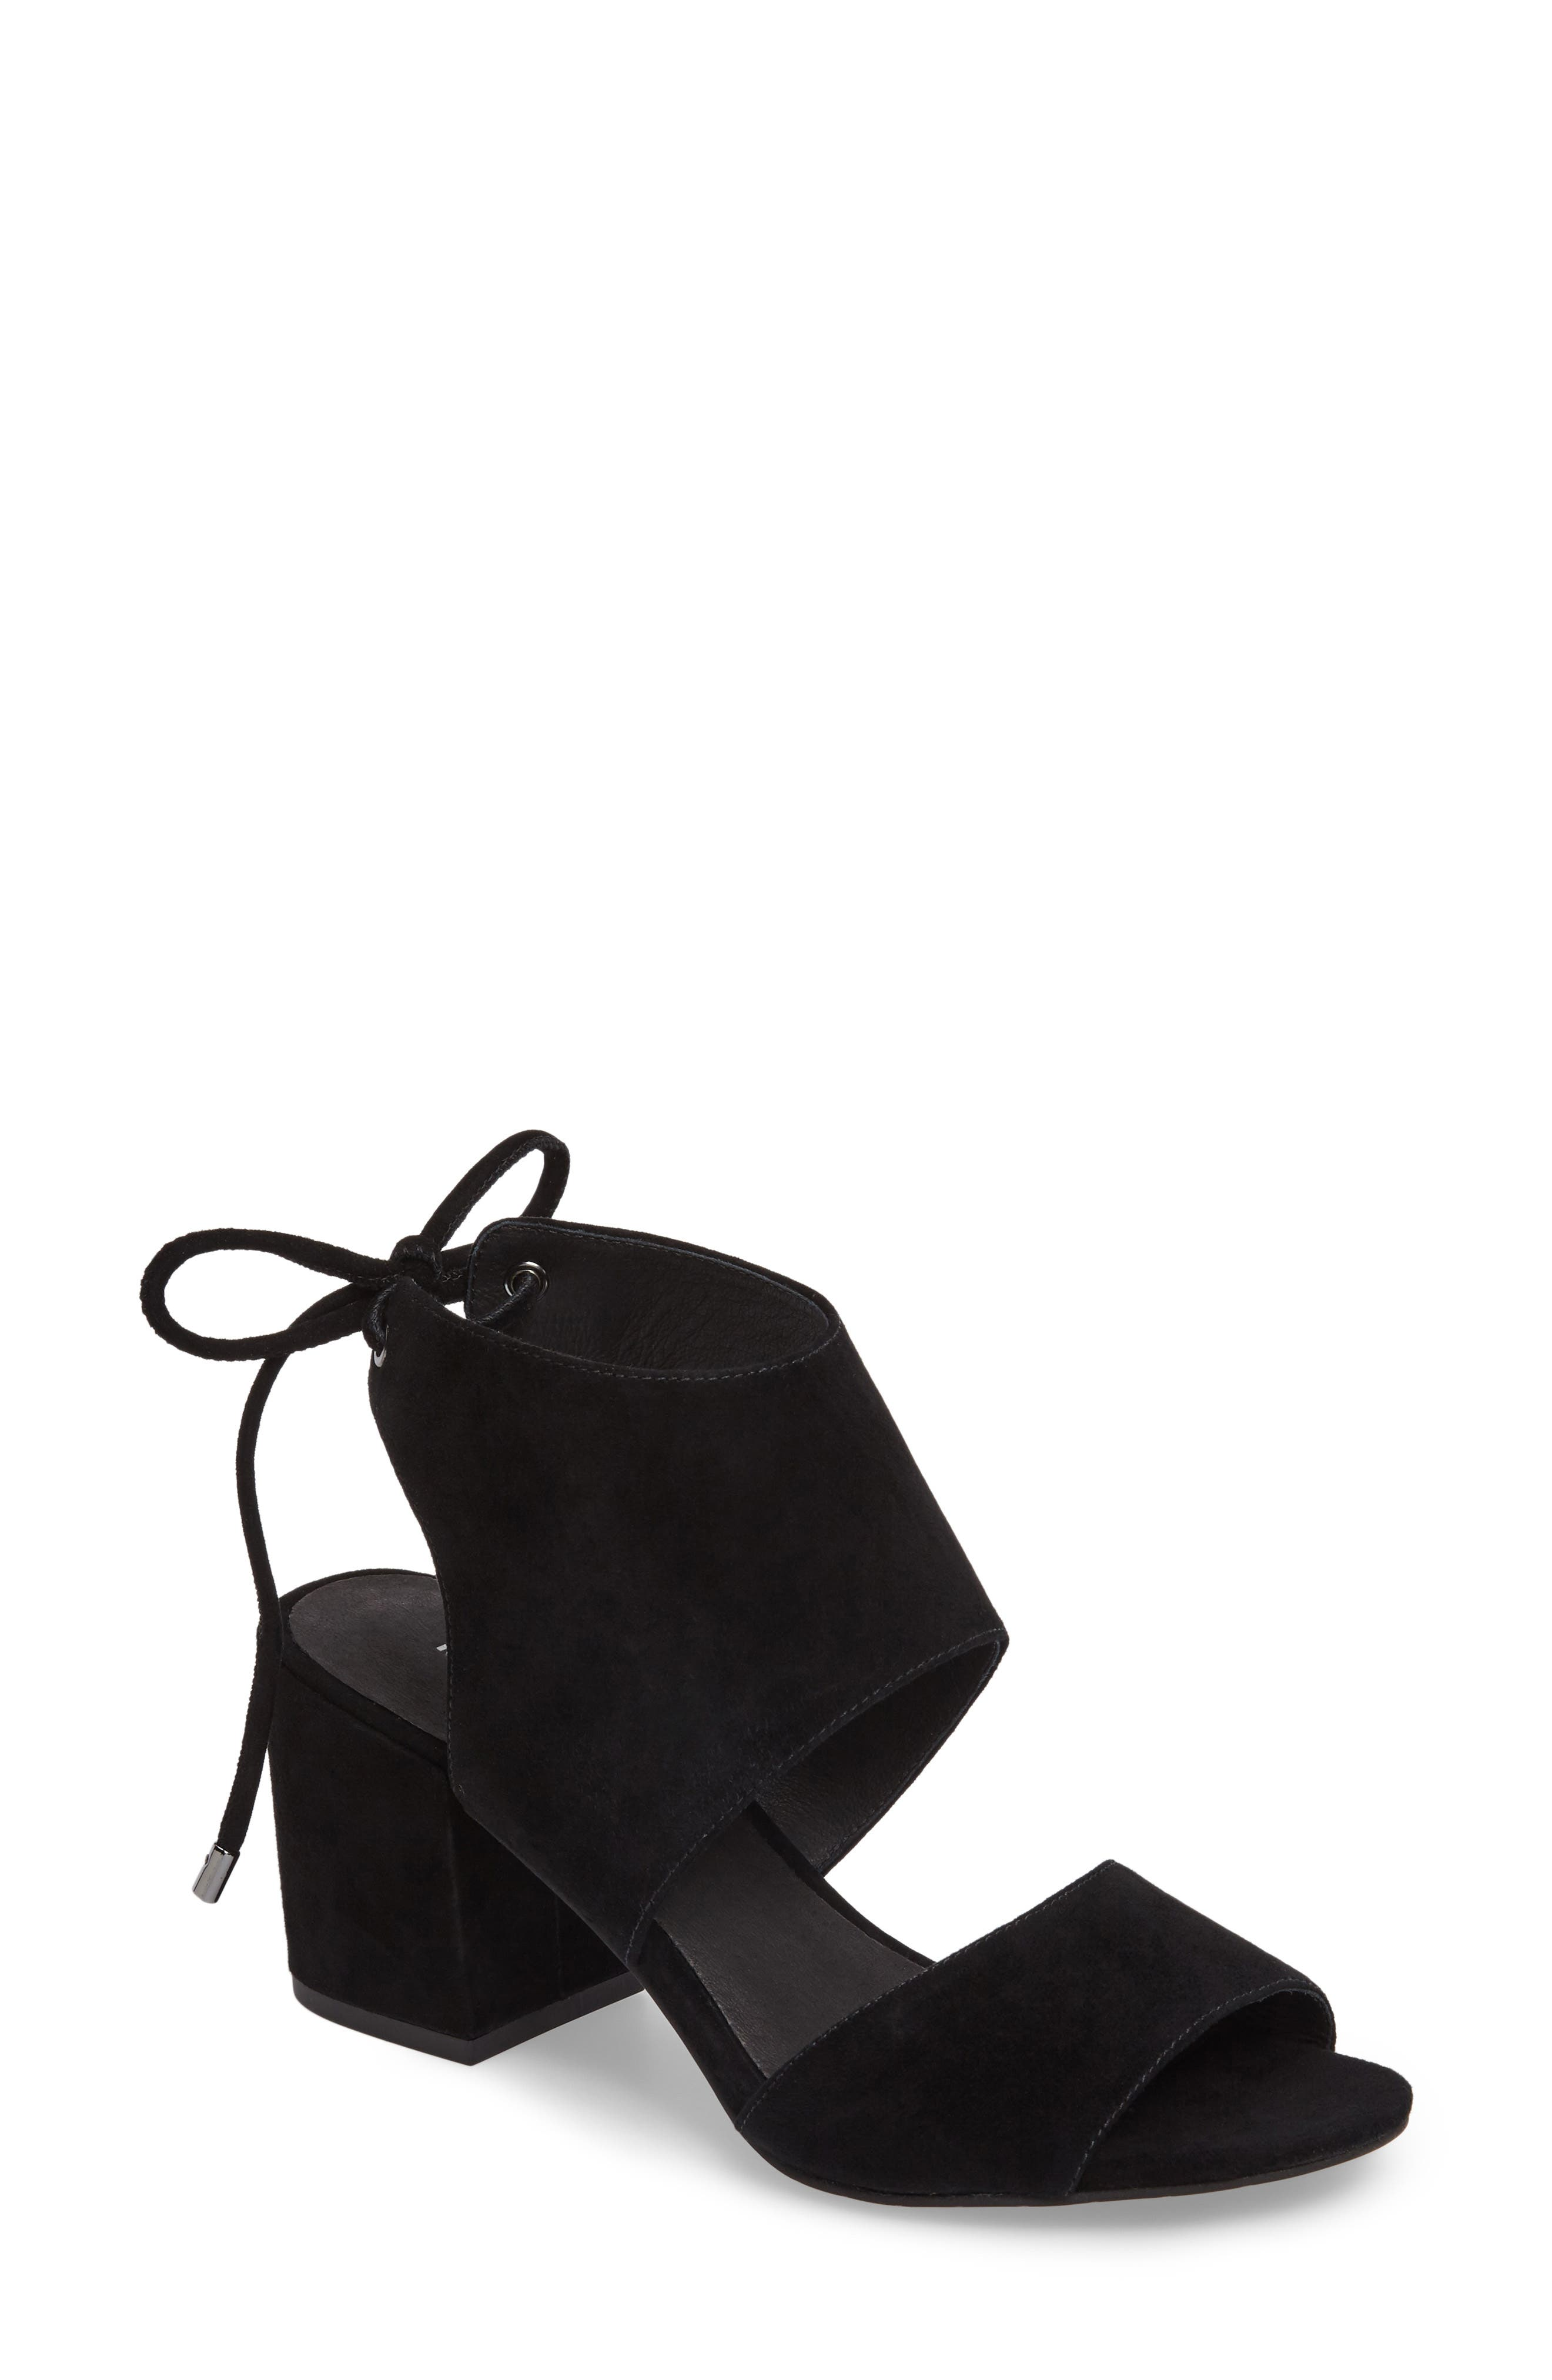 Main Image - Kenneth Cole New York Vito Sandal (Women)